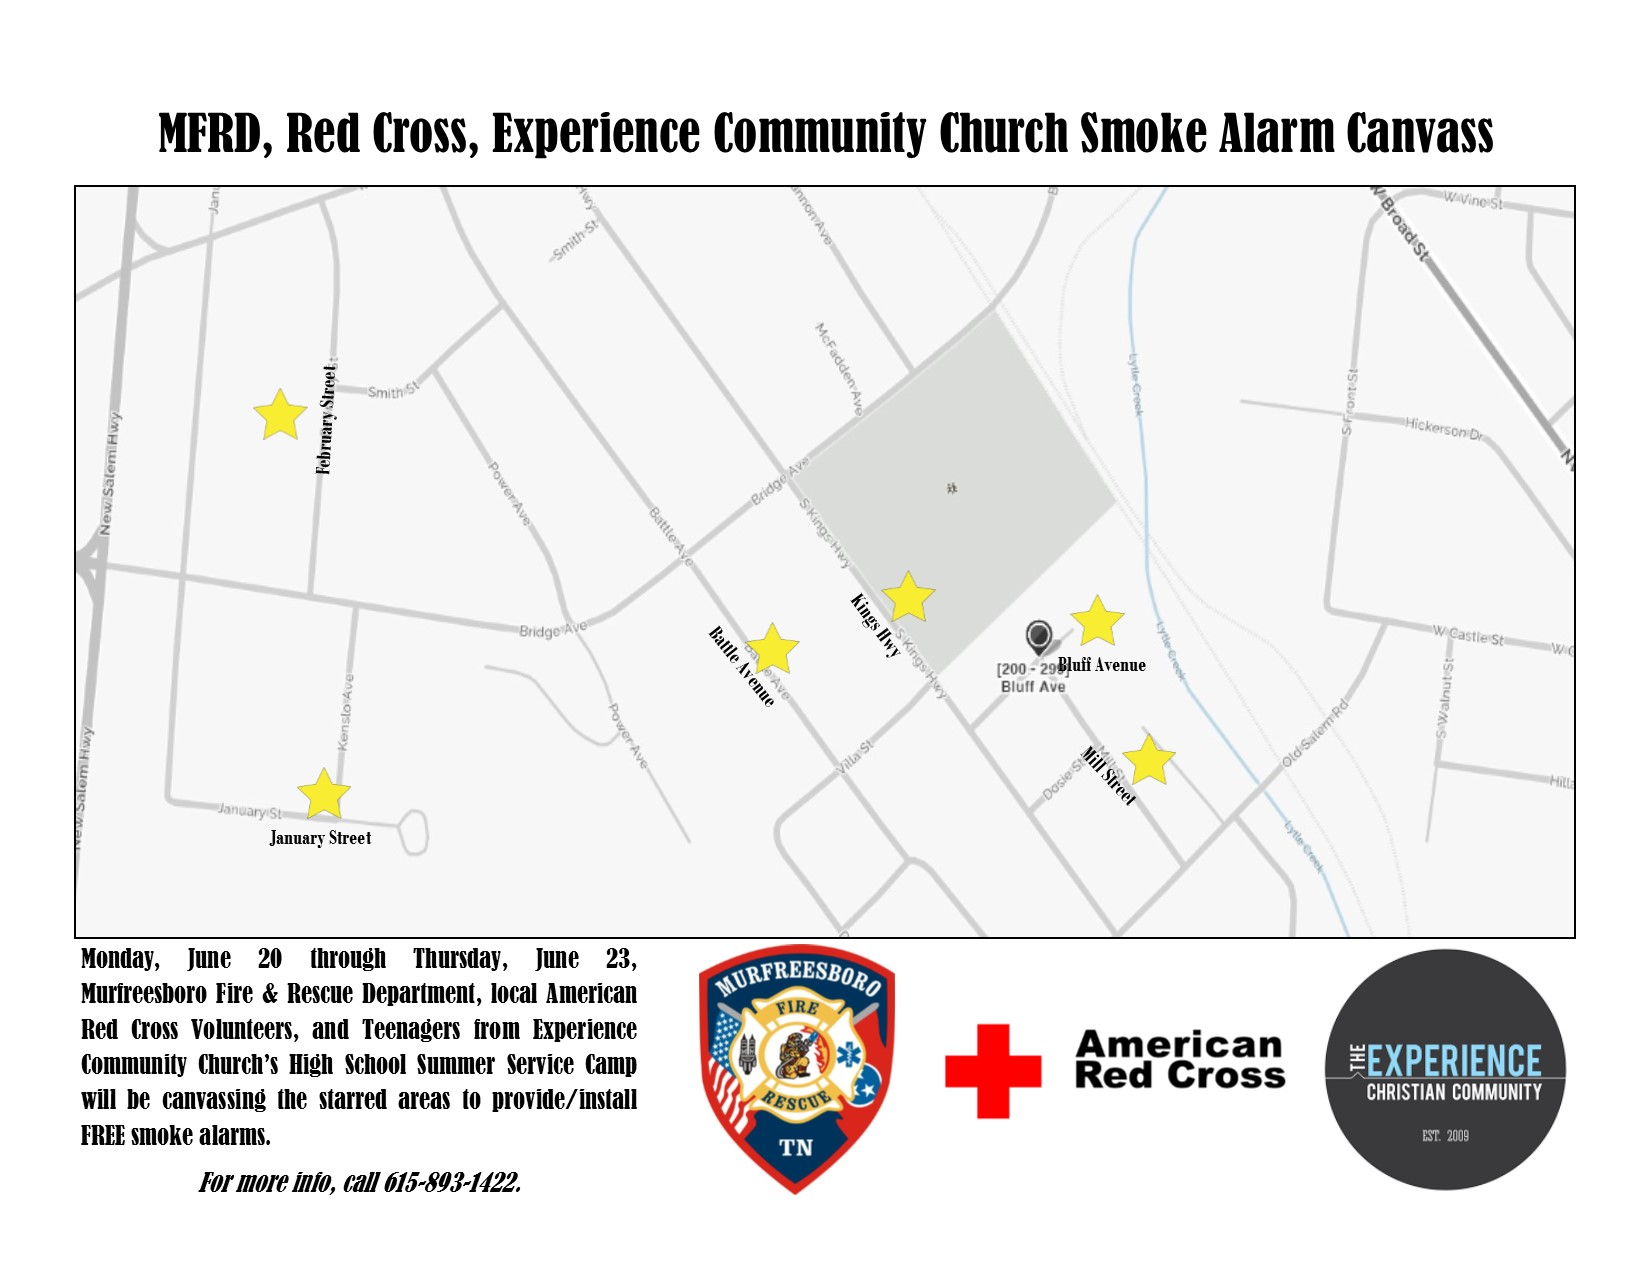 Murfreesboro Fire, Red Cross, and Experience Community Partner for Smoke Alarm Canvass